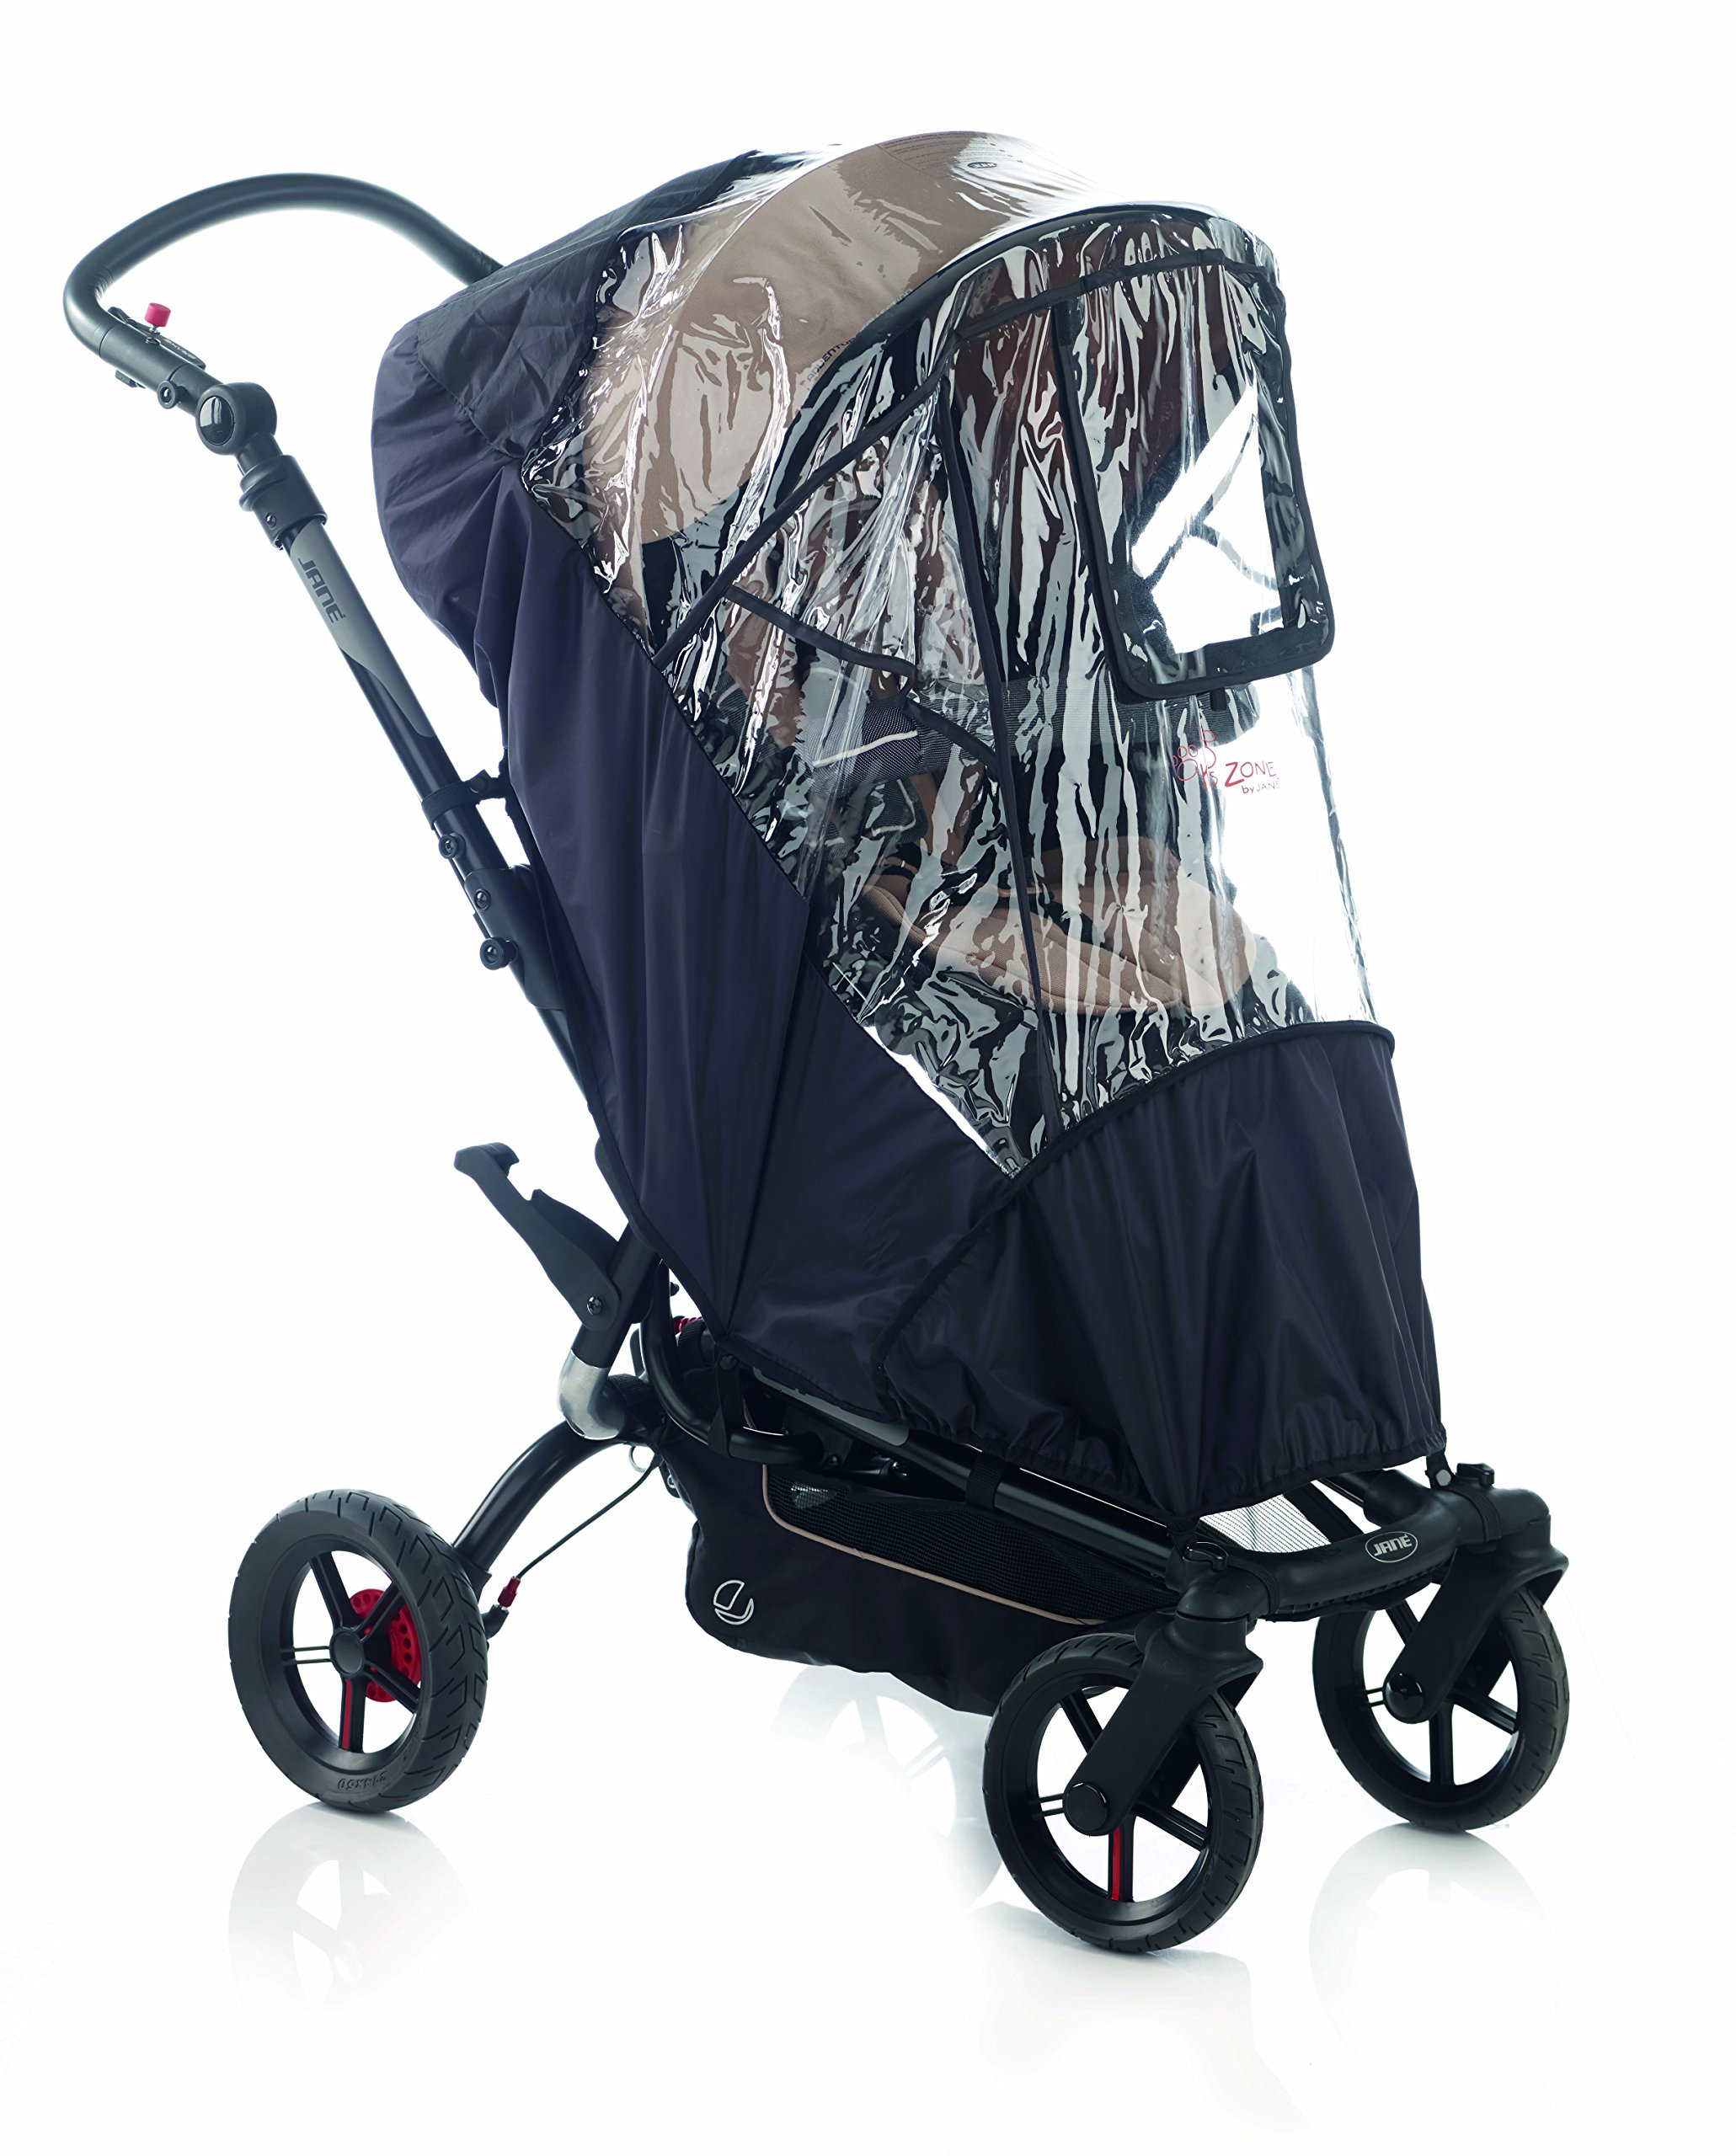 Jane Raincover for Pushchair (Unv/Nylon) Jane, Inc. Universal fitting - should fit most Pushchairs with a hood on the market Jane models we have confirmed it fits on are: Muum, Epic, Twone Single, Rider, Trider and Trider Extreme This raincover is a quality accessory that is reinforced to prolong its life 1